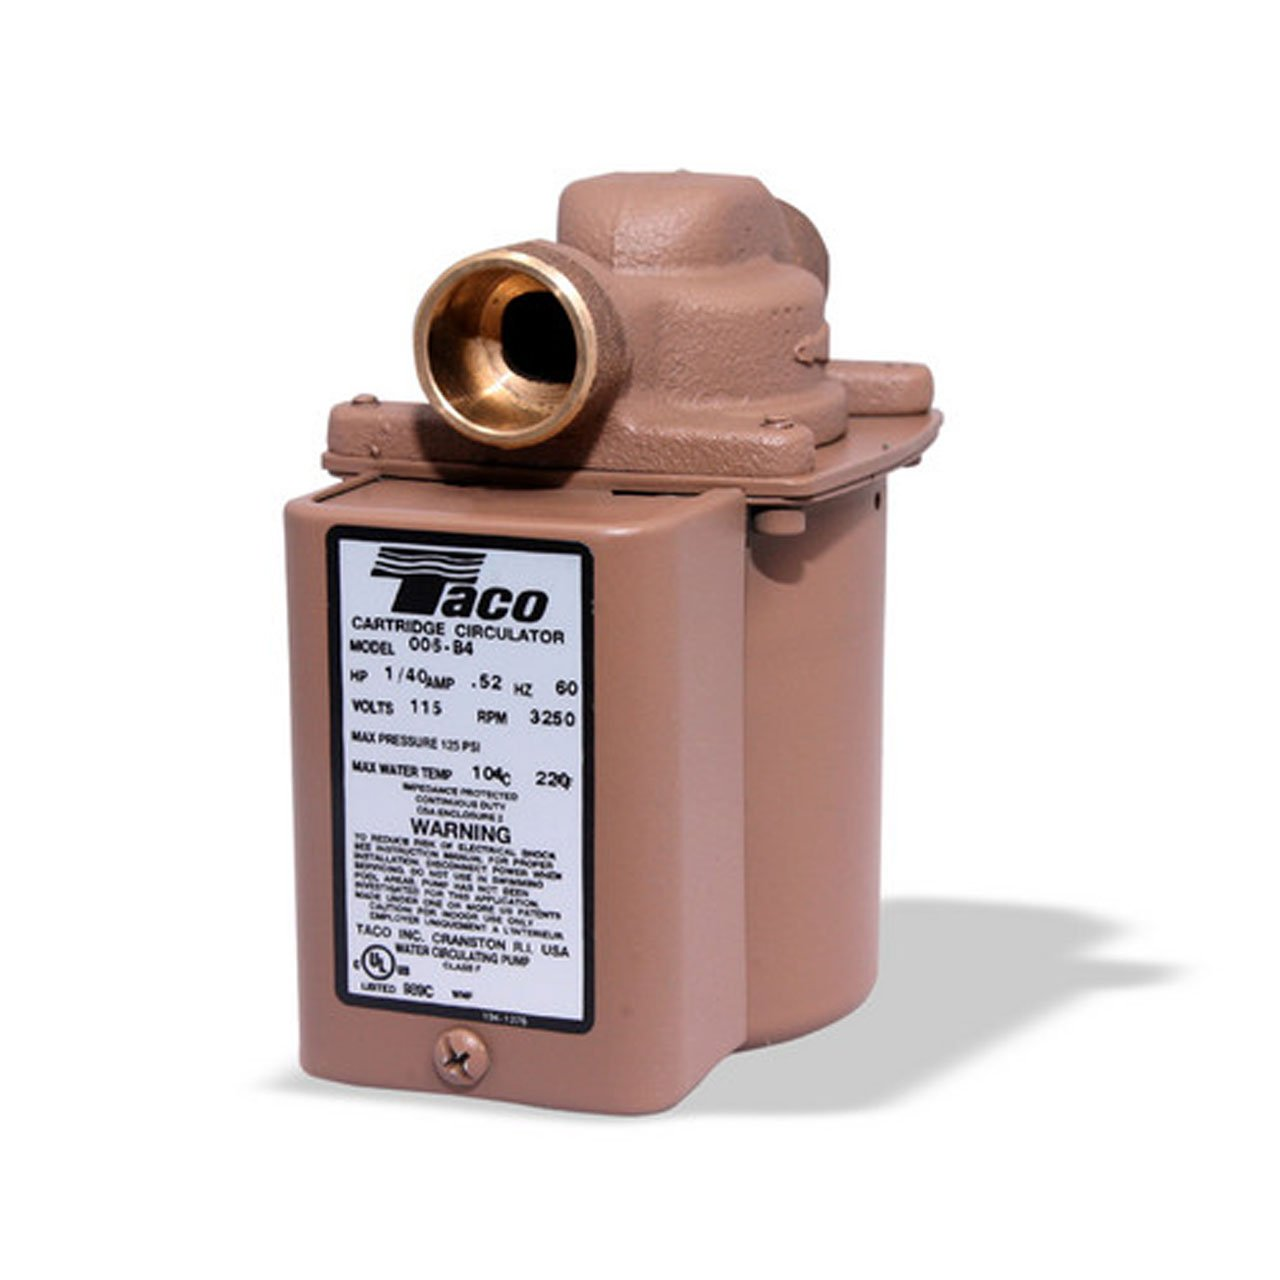 Taco 006-BC7-1IFC Bronze Circulator Pump 1/2-Inch Sweat with Integral Check Valve by Taco